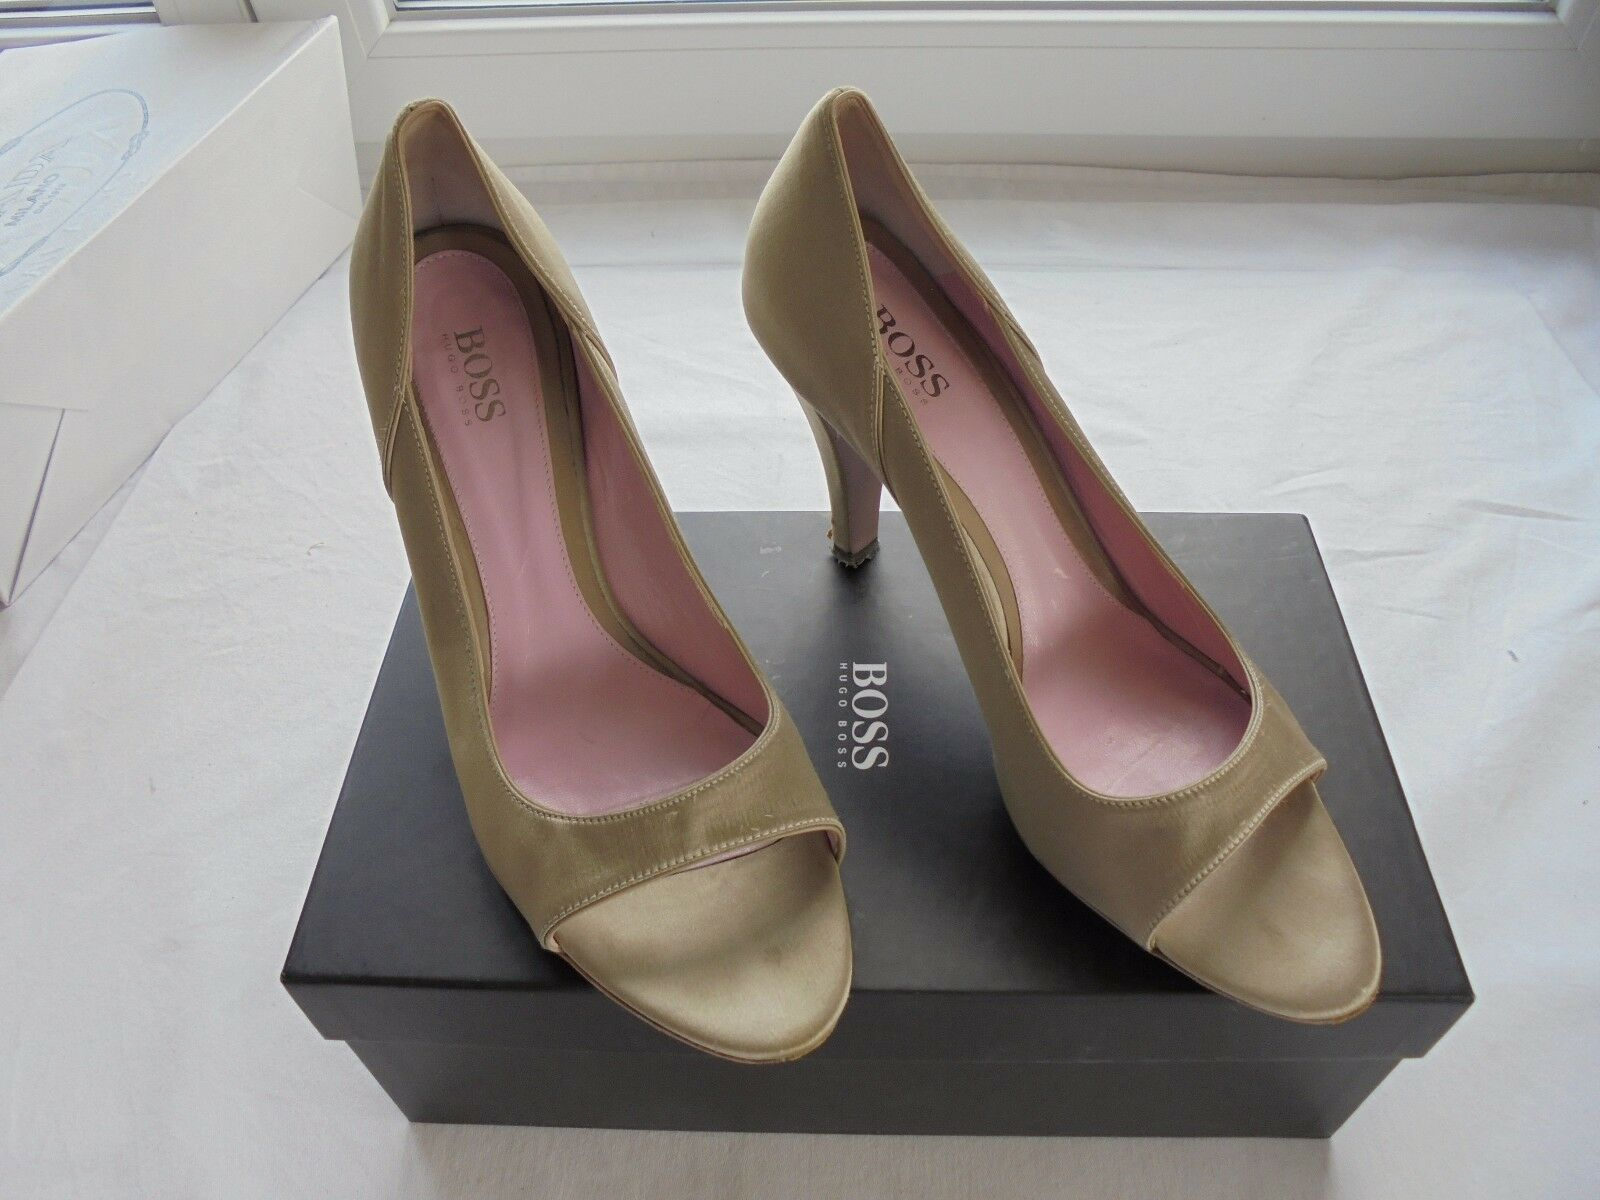 Hugo NP Boss Satin Leder Pumps NP Hugo  High Heel Peep Toes Schuhe 40 40,5 41 173d02